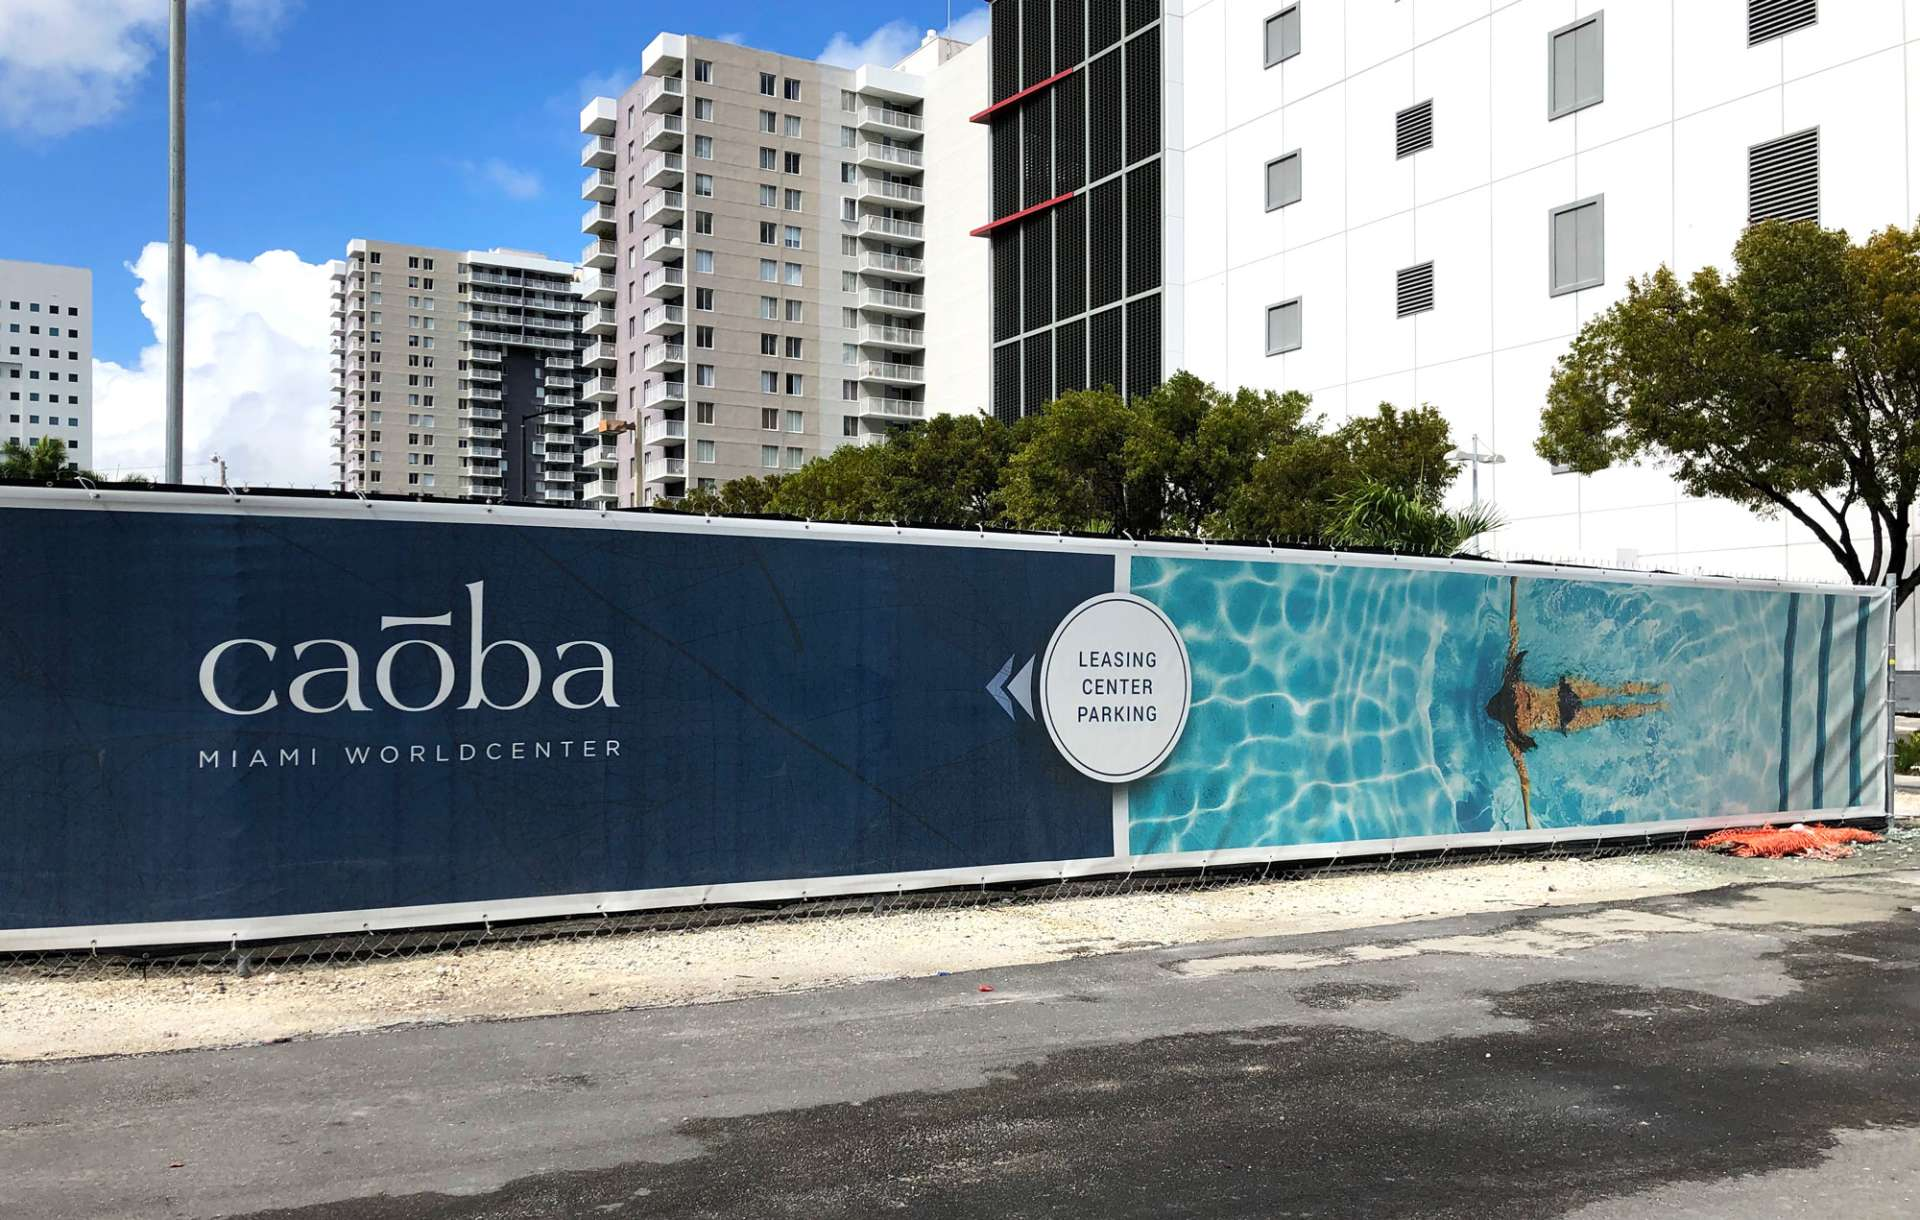 Outdoor advertising barricade for Caoba during construction